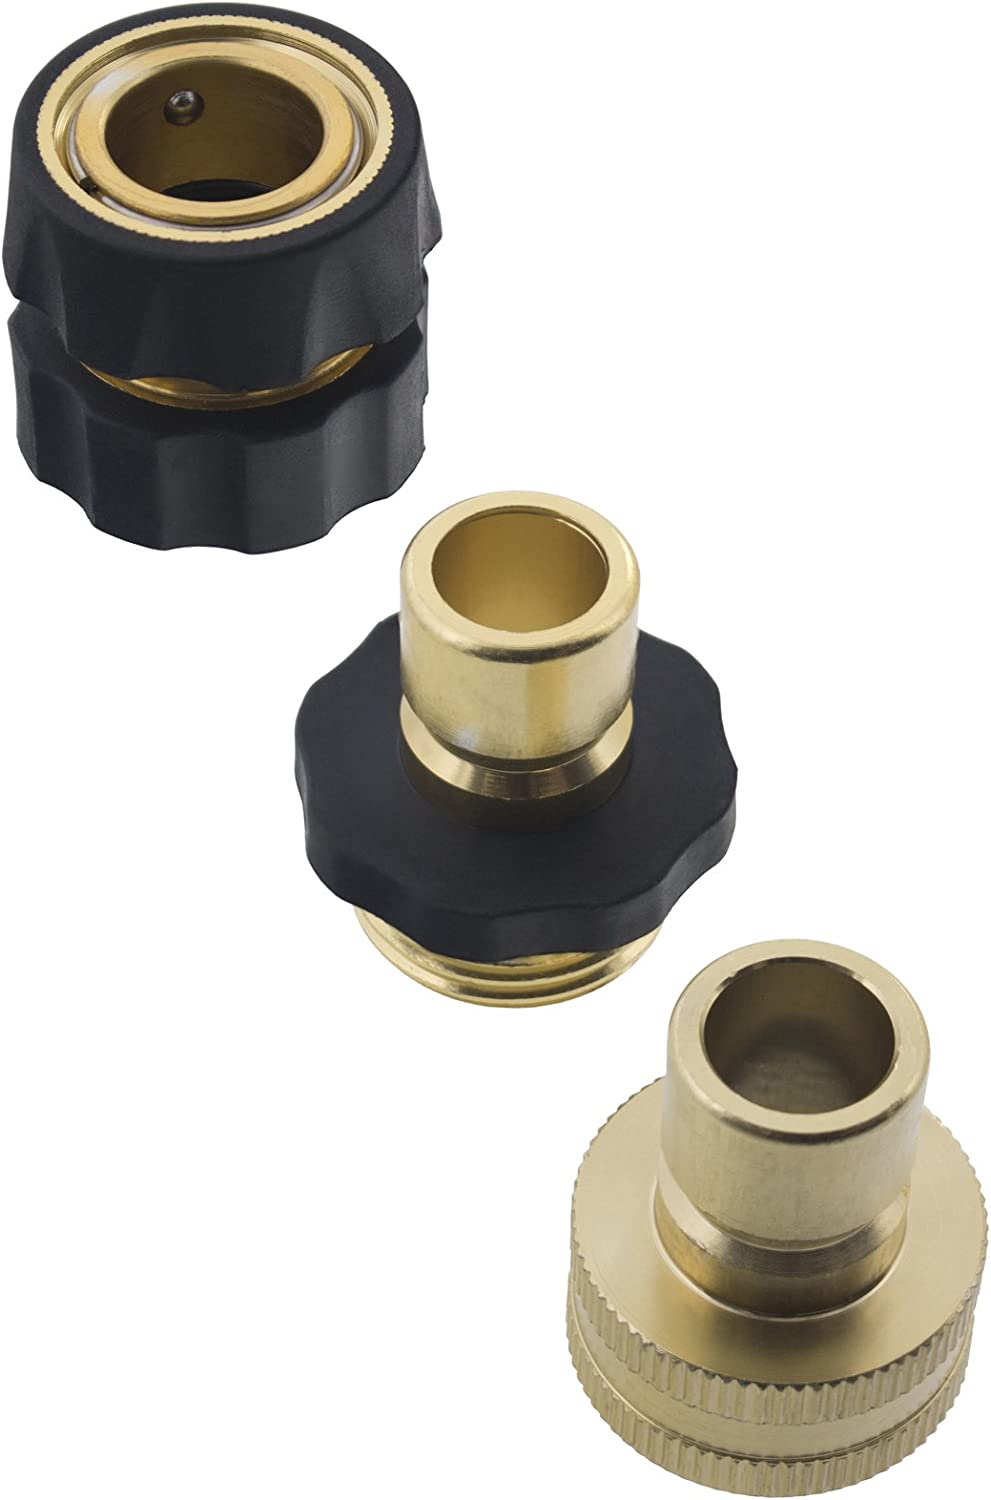 Erie Tools Garden Hose Pressure Washer Quick Connector Kit with Male Female Connections and Nylon Grip